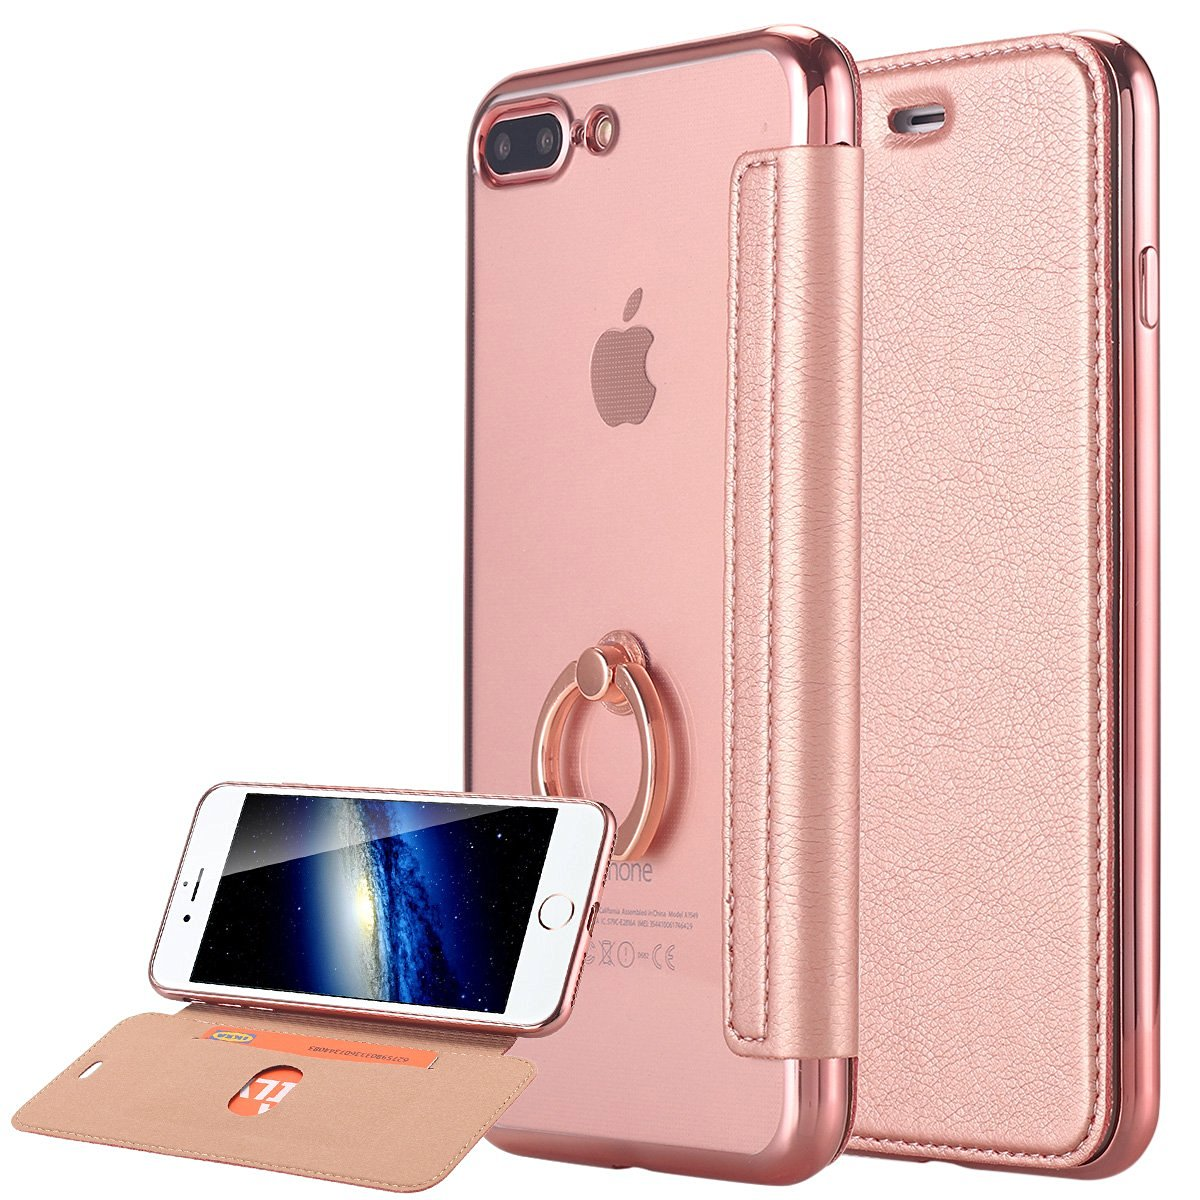 iPhone 8 Plus / 7 Plus Case, LONTECT Ultra Slim PU Leather Folio Flip Case Card Slot with Clear Soft TPU Back Cover Built-in Ring Grip Holder for Apple iPhone 8 Plus / 7 Plus - Rose Gold